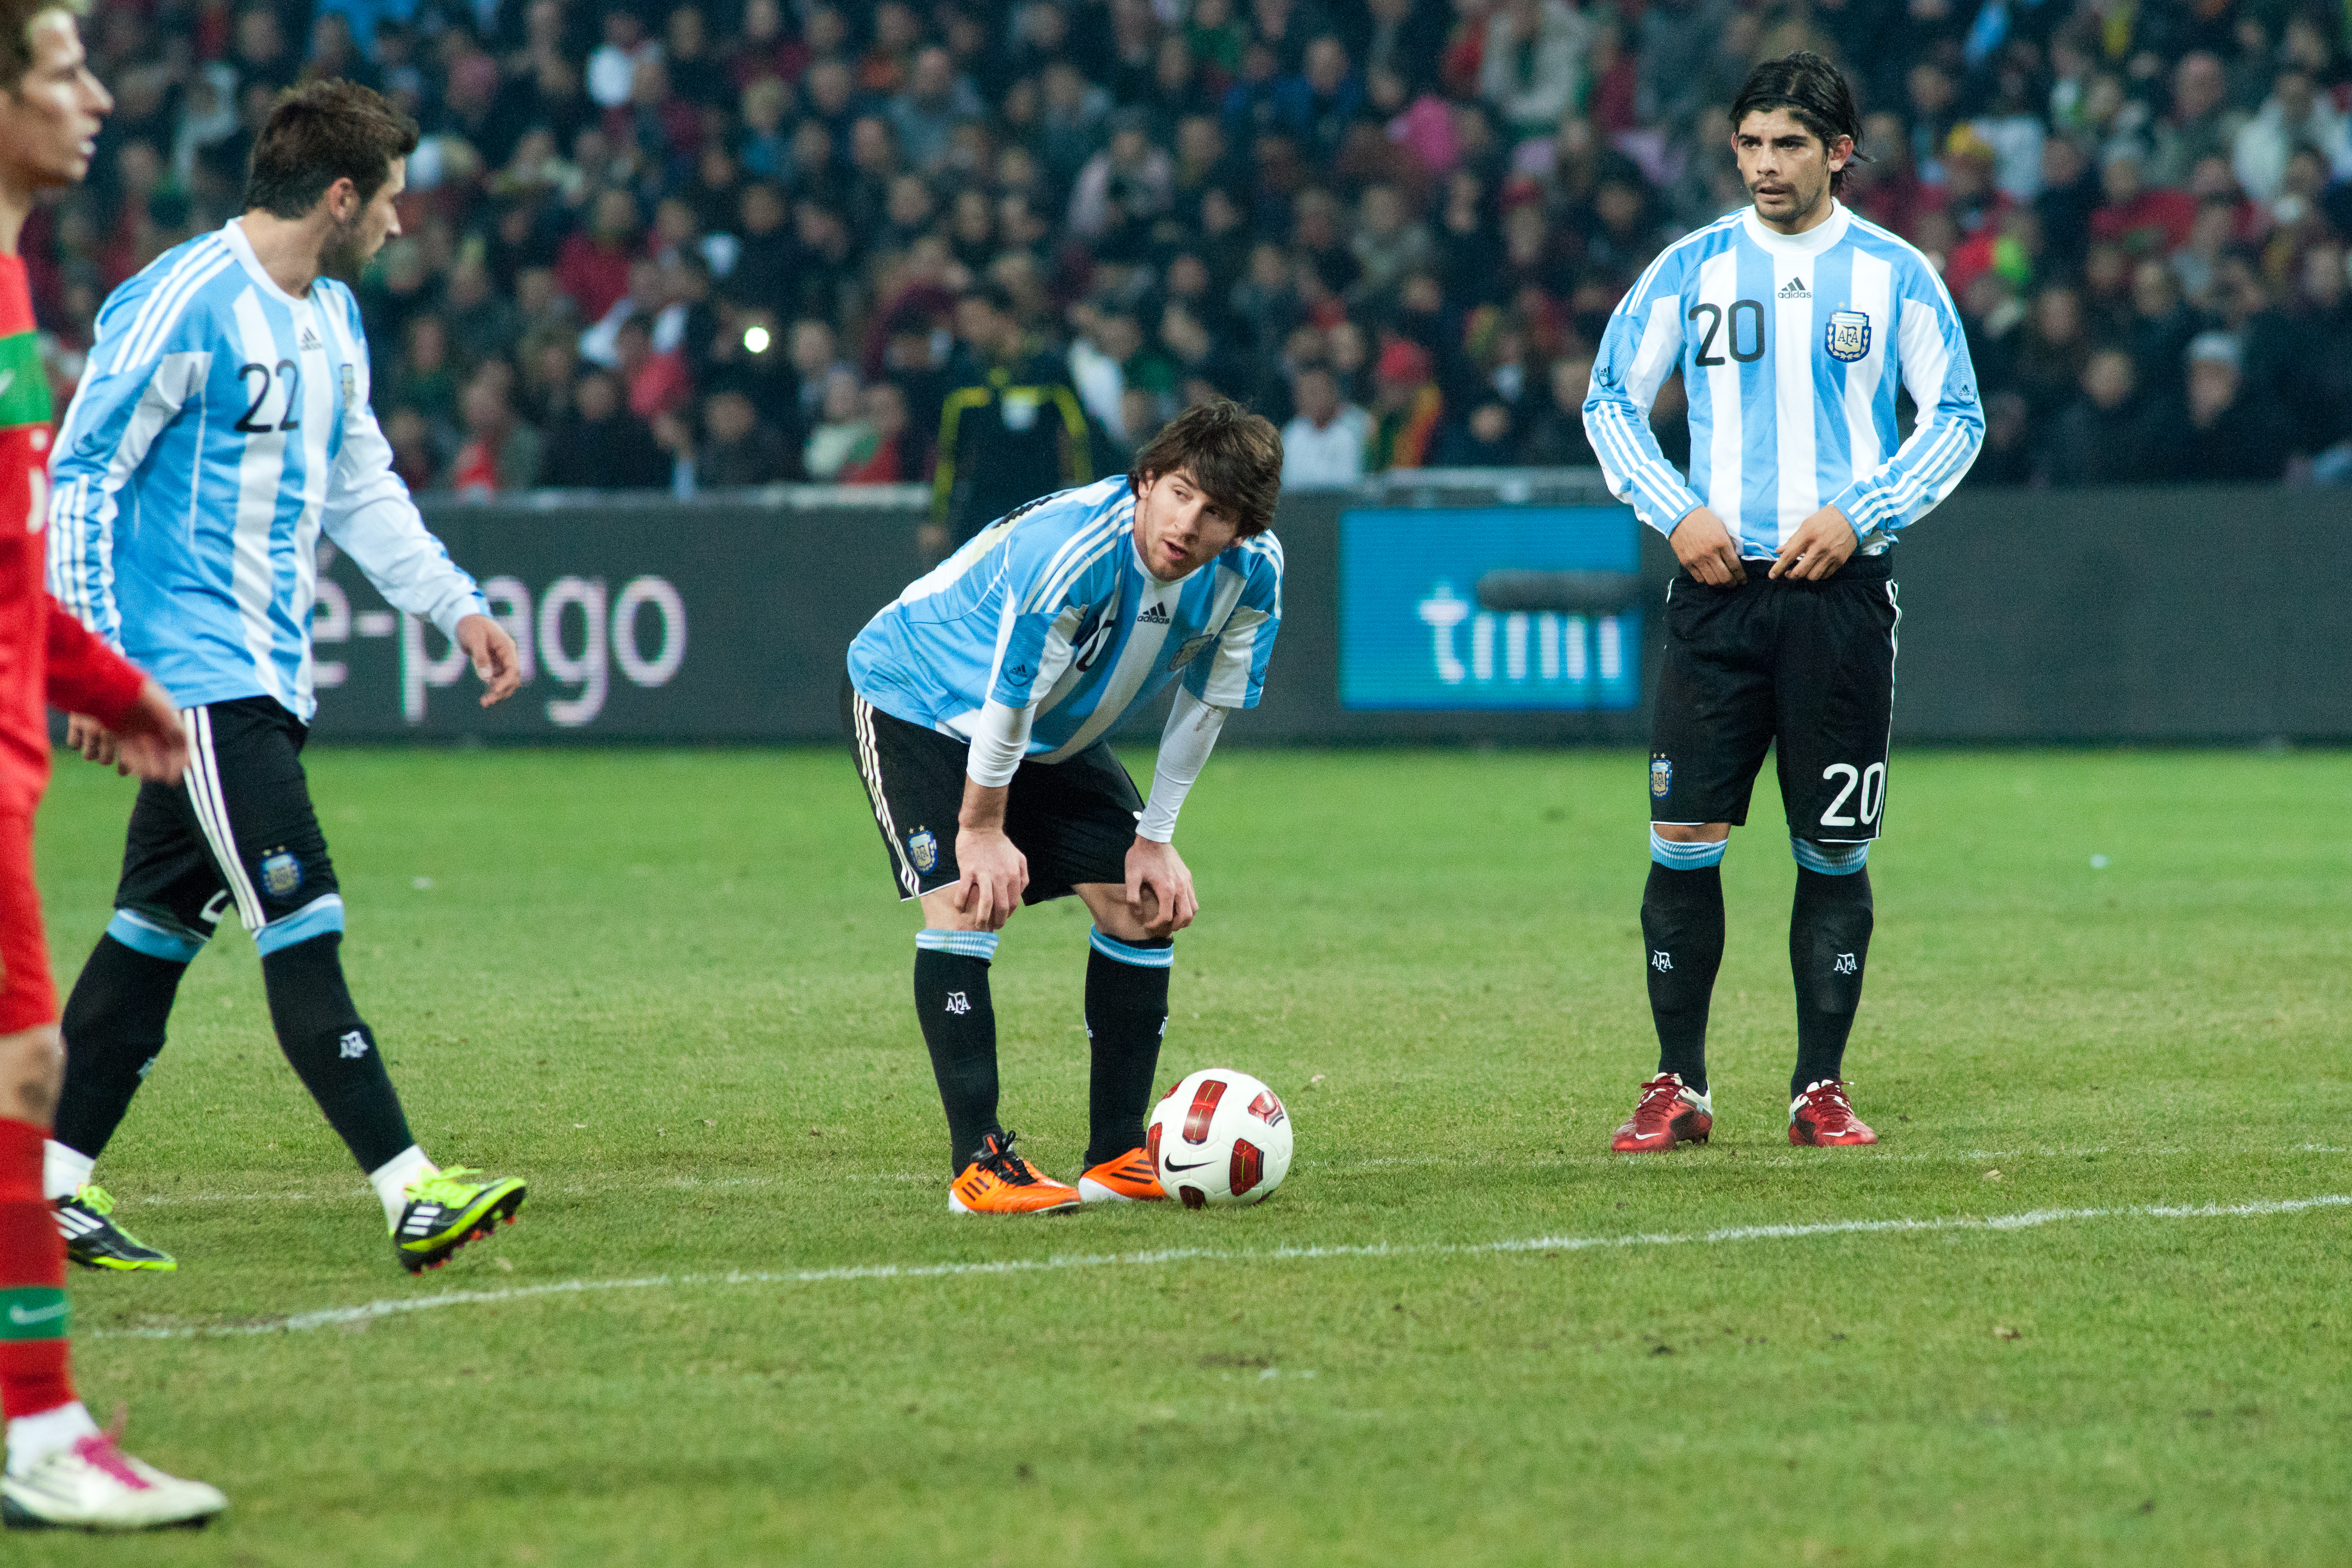 Filelionel Messi Getting Ready To Shoot A Free Kick Portugal Vs Argentina Th February